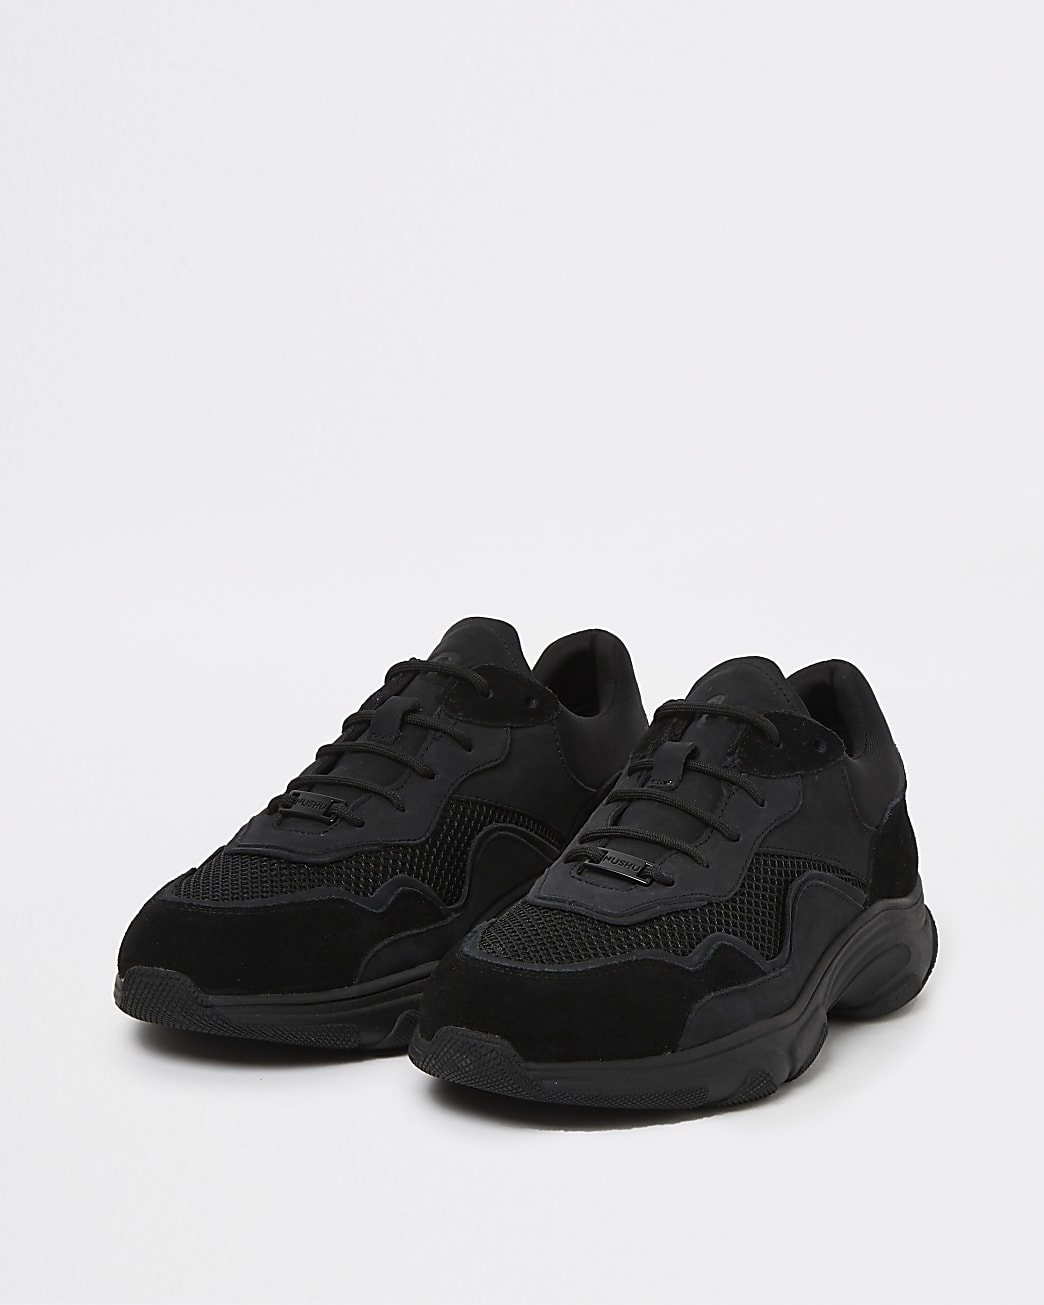 Nushu black 3D trim lace up runner trainers